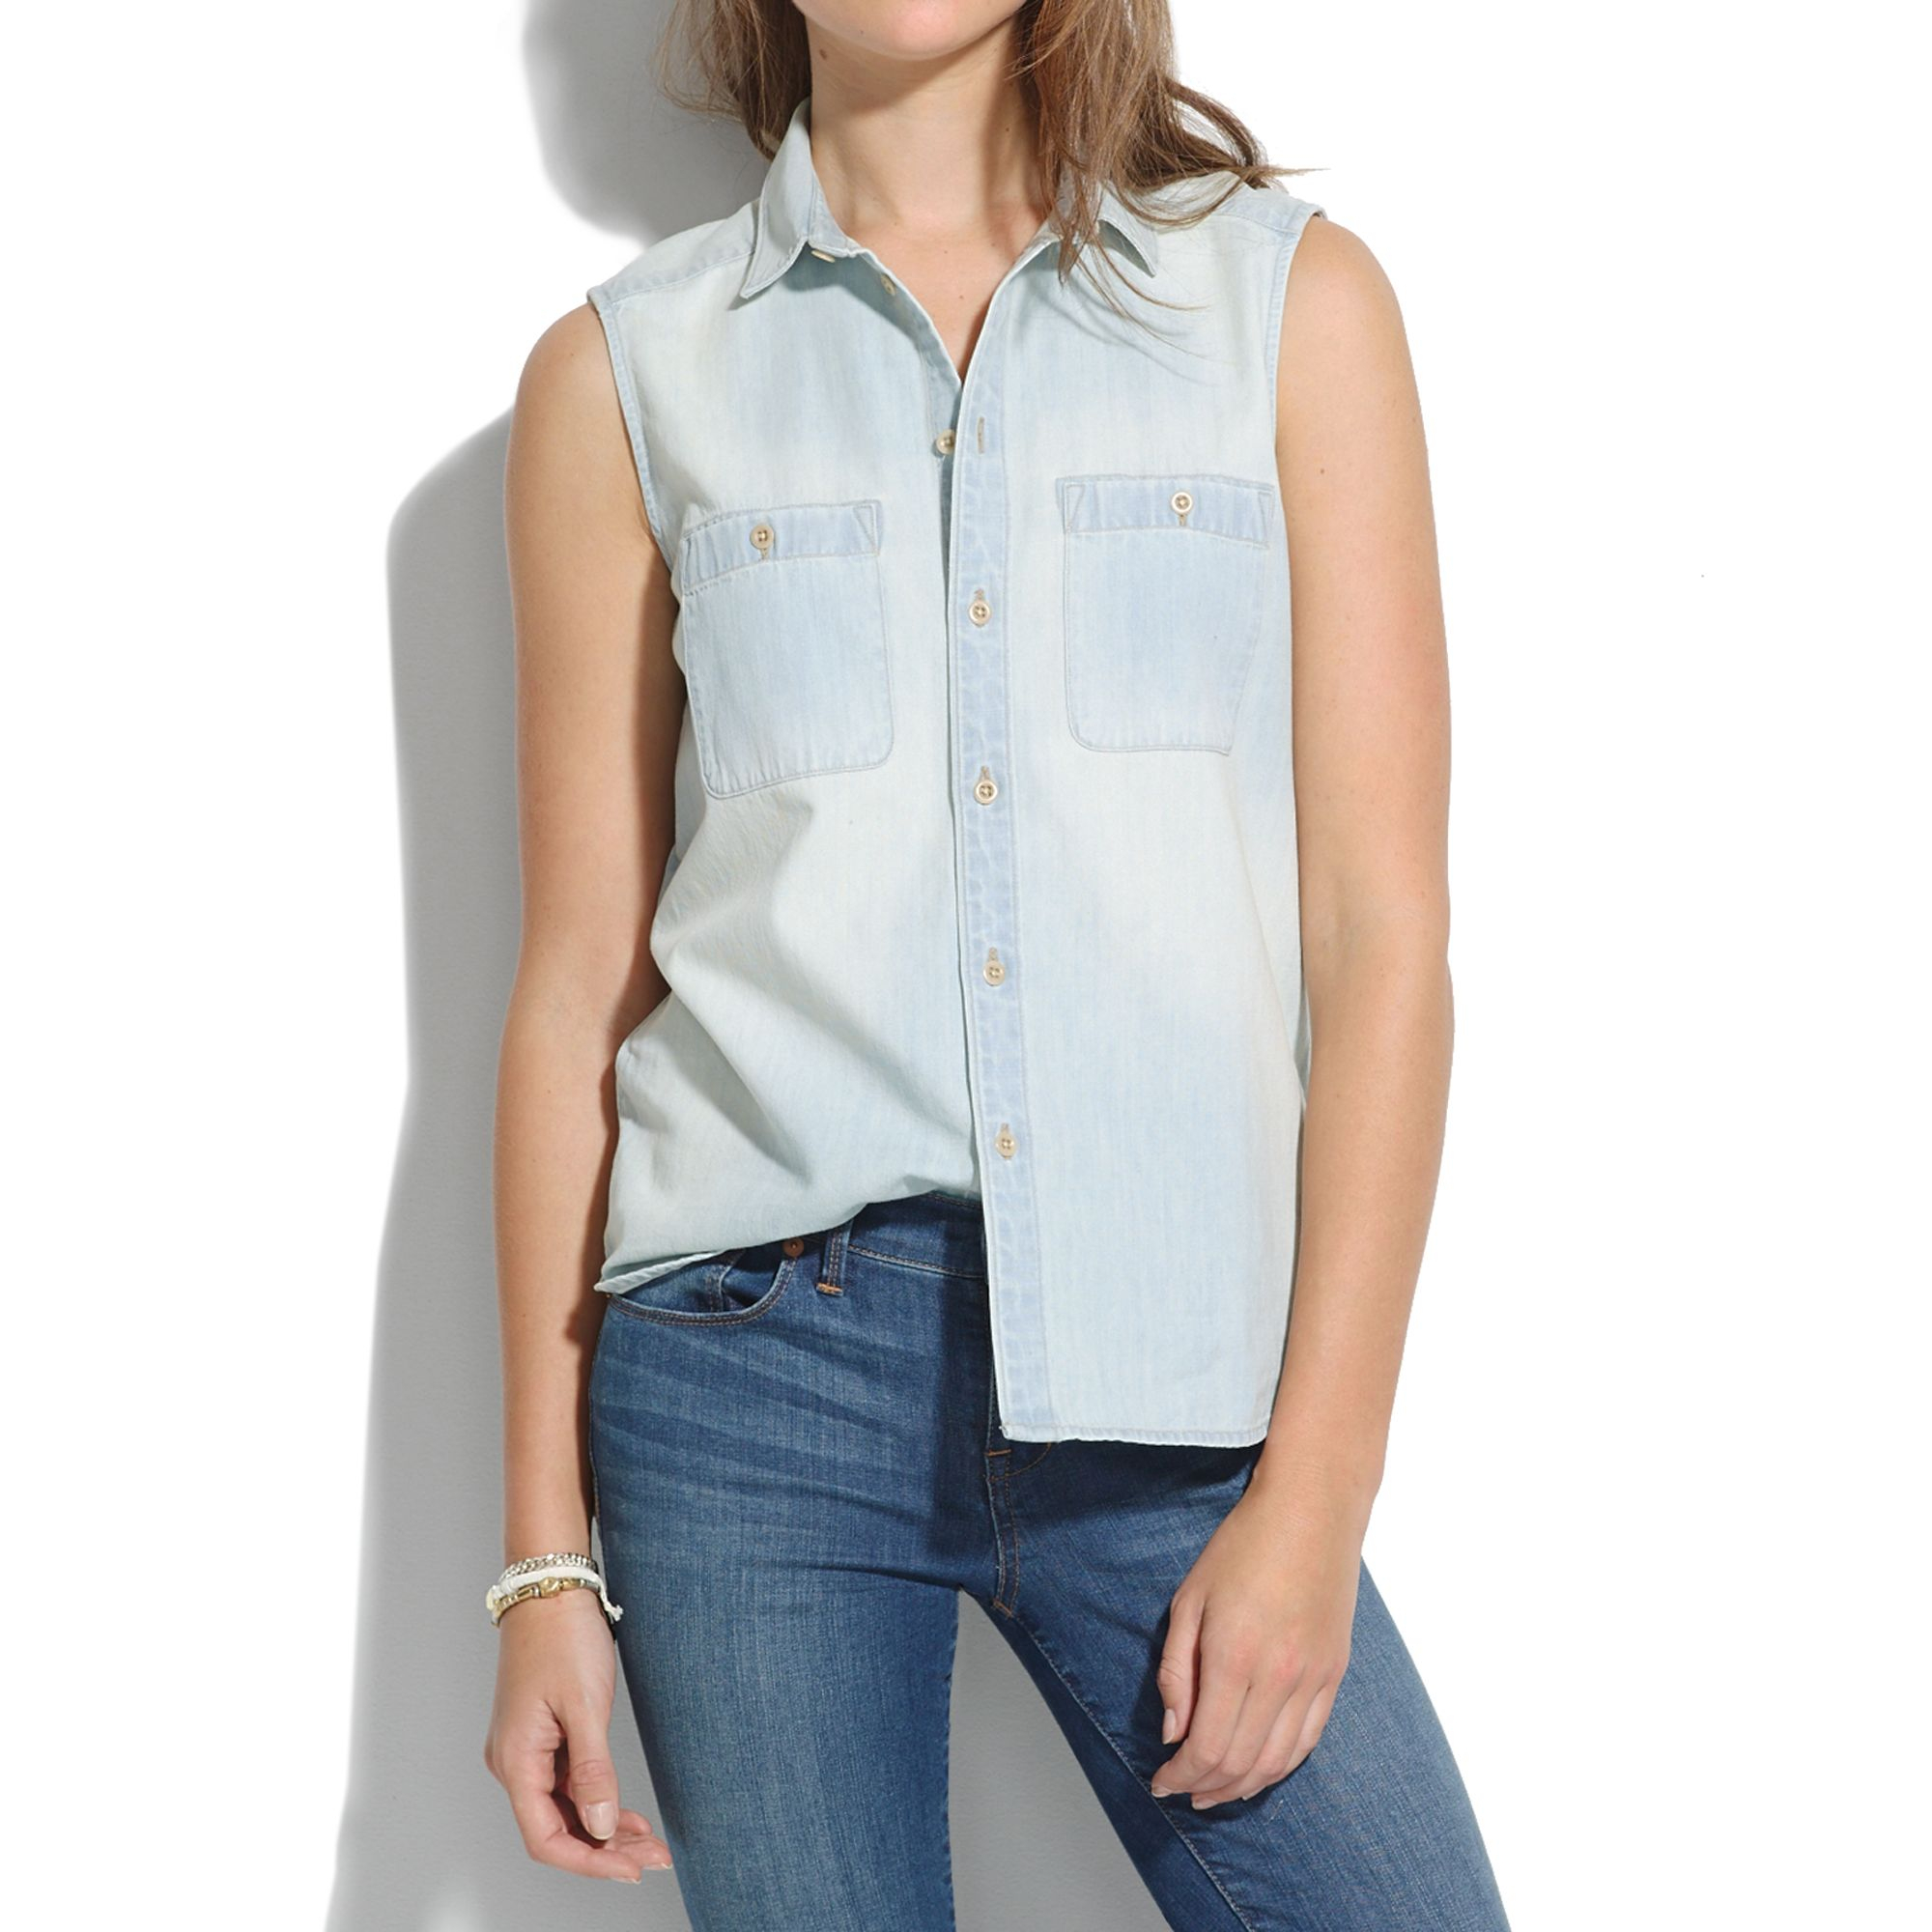 Lyst madewell chambray workbench top in sunflare in blue for Chambray top